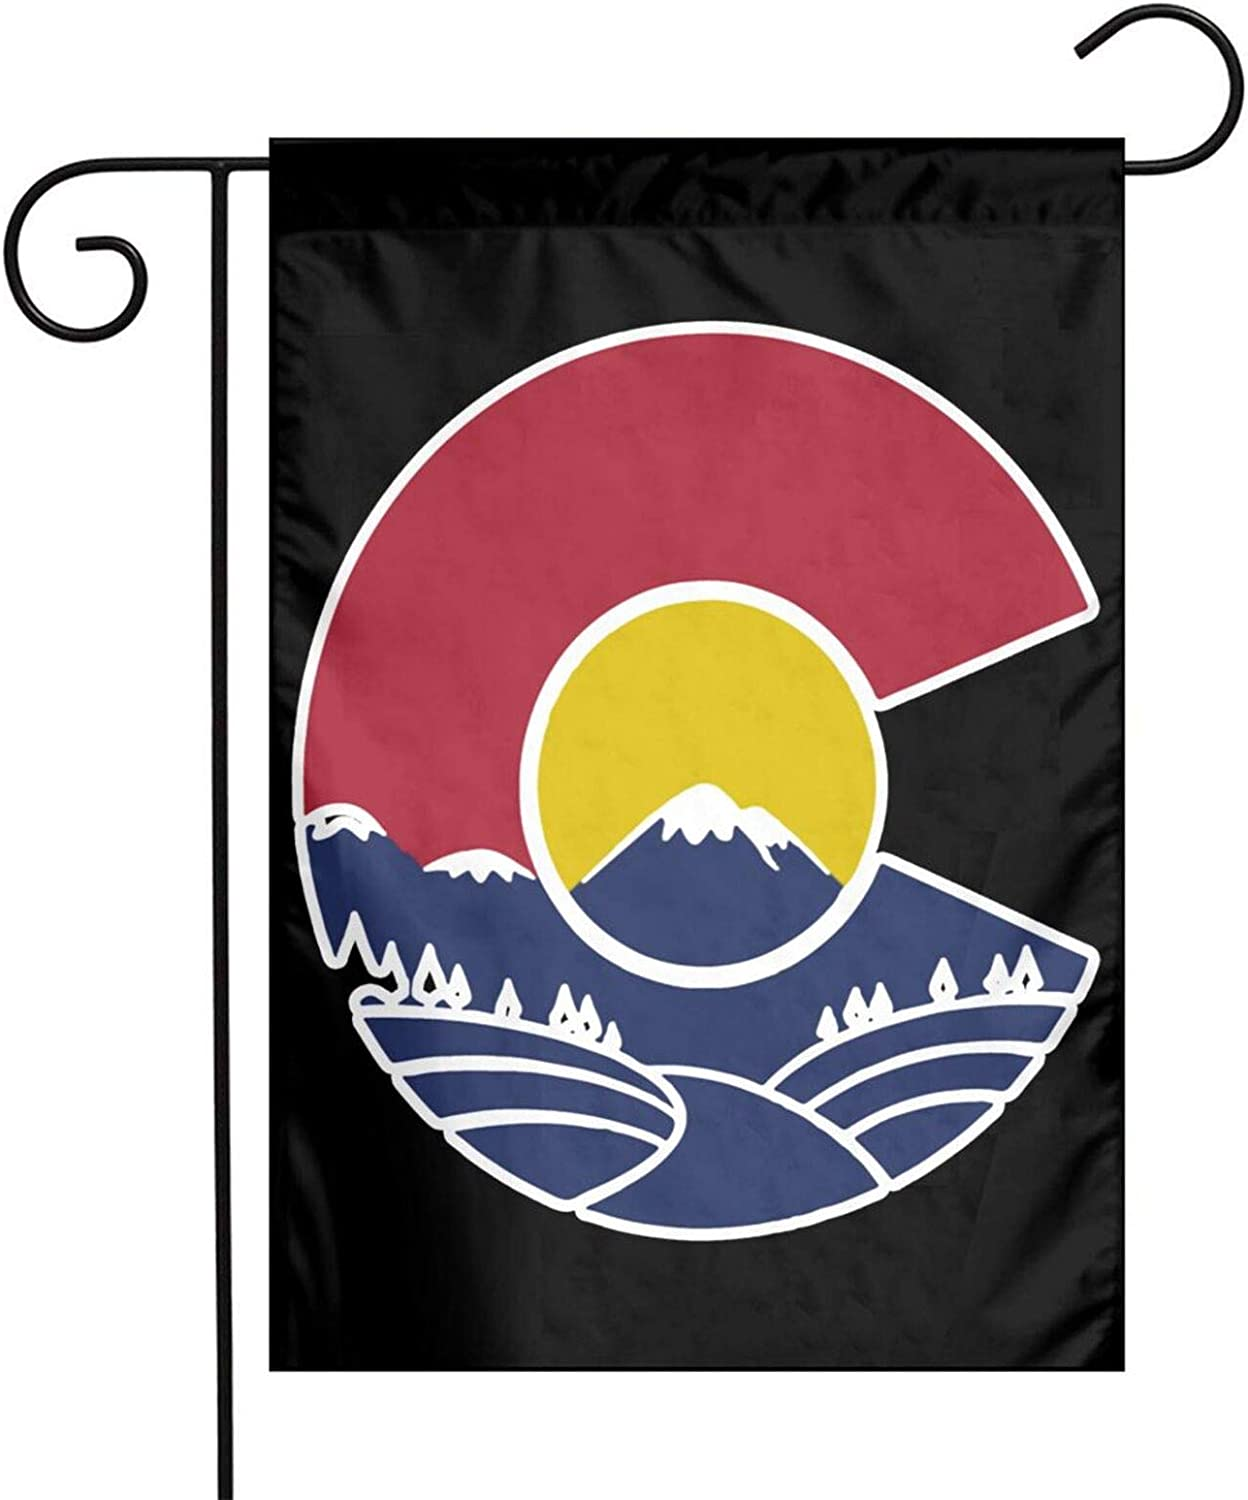 Augenstern Garden Flag Rocky Mountain Colorado C 12 X 18 Inch Winter Yard Flag Double Sided Yard Decorations Holiday Outdoor Flag